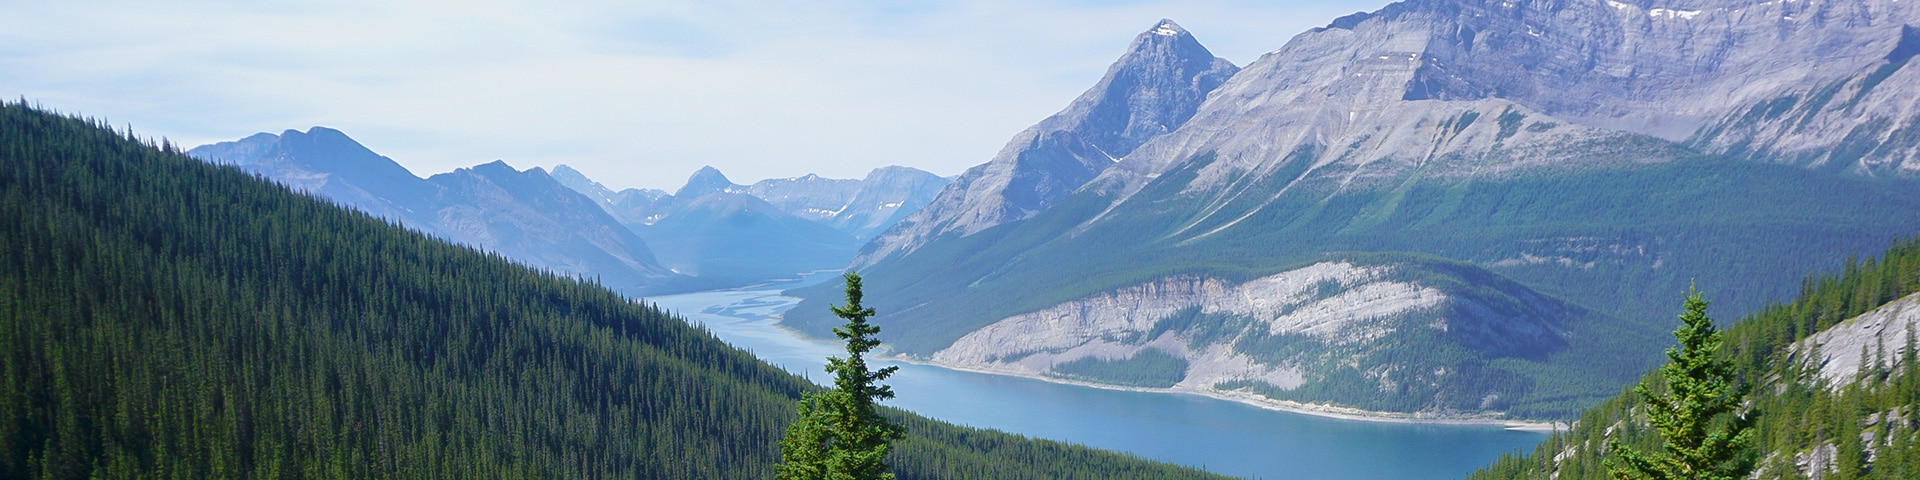 Panorama of the West Wind Pass hike from Smith-Dorrien Trail in Kananaskis near Canmore